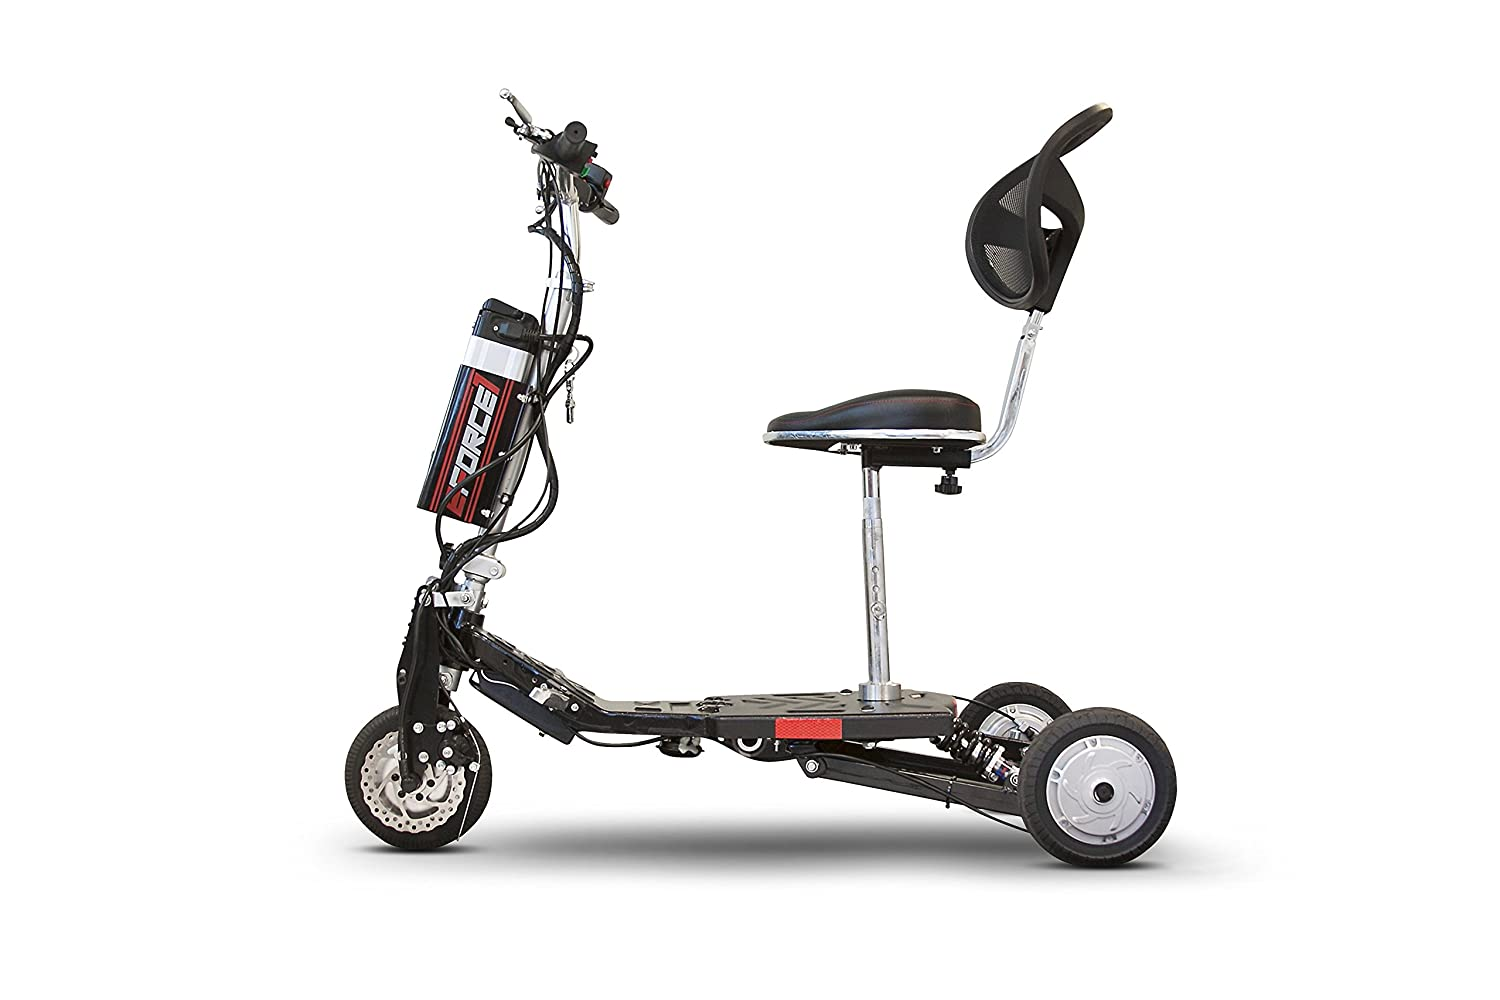 E-Wheels - EW-07 - EFORCE1 - Portable Powerful Electric Scooter